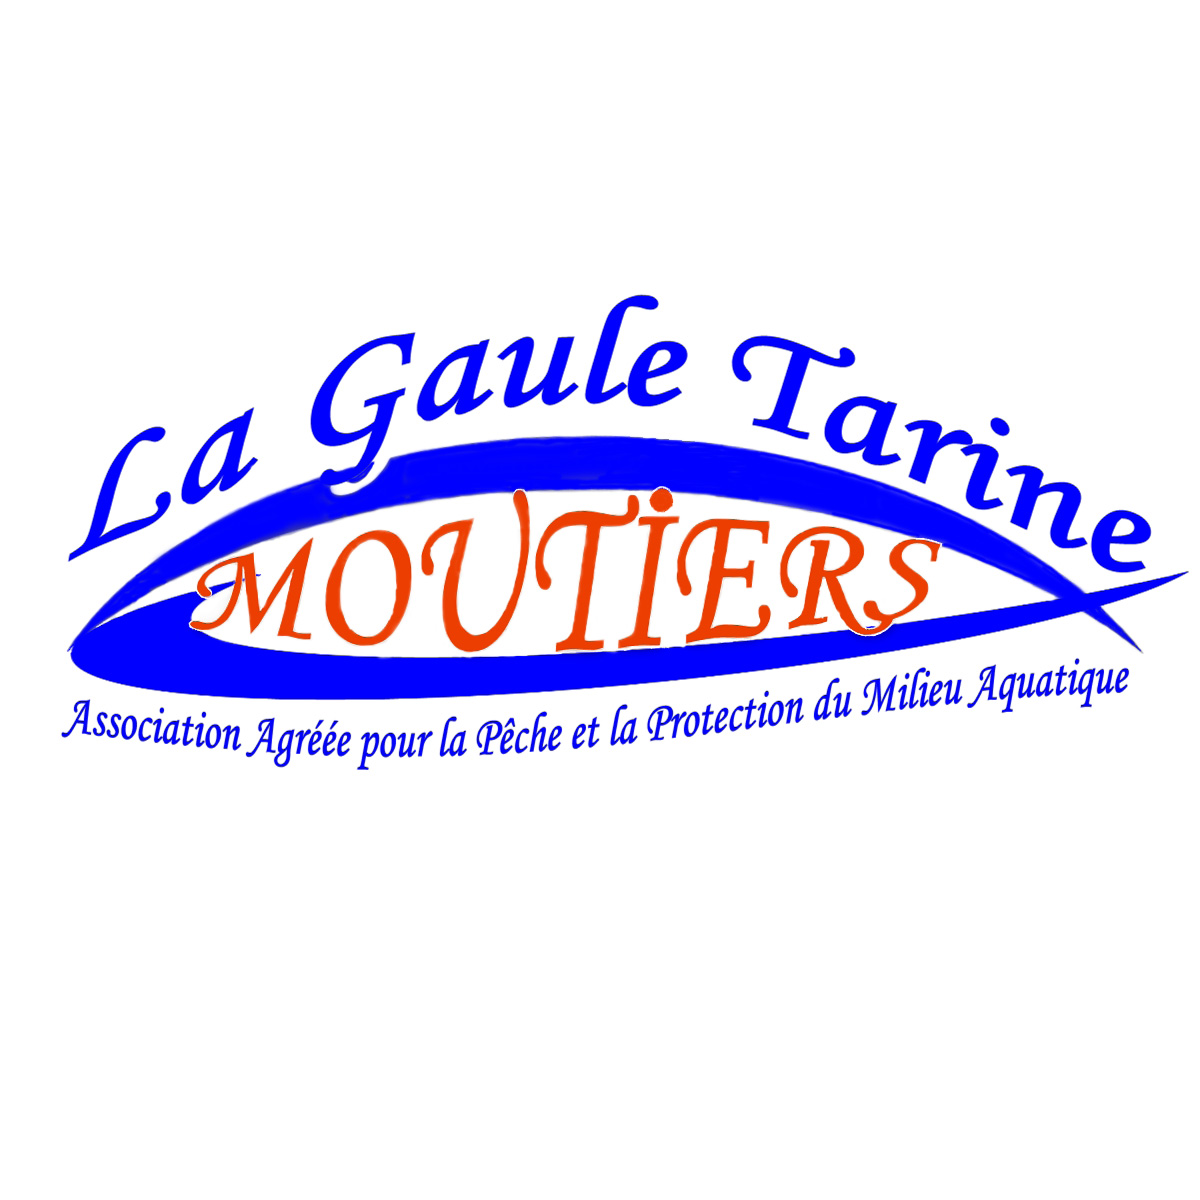 Moutiers fishing association